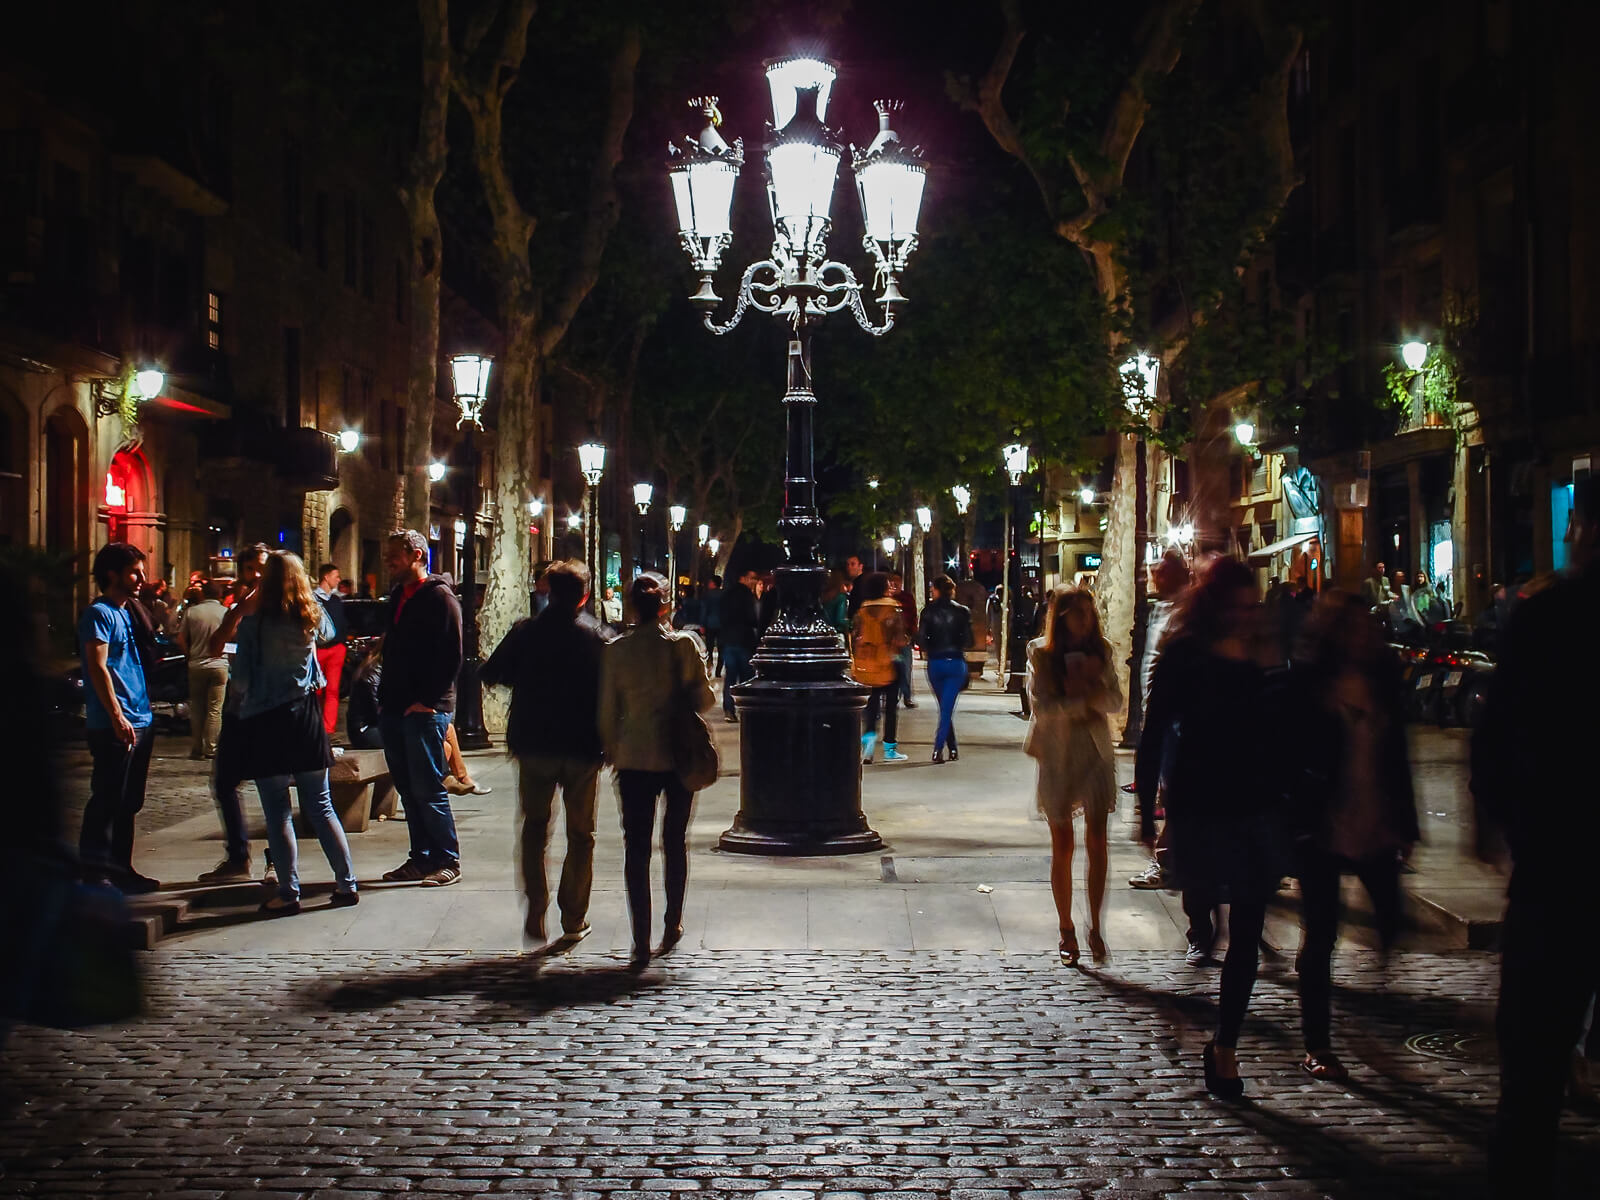 Barcelona Street Photography, curlicue street lamp, narrow tree alley, pedestriants passing, romantic night walk